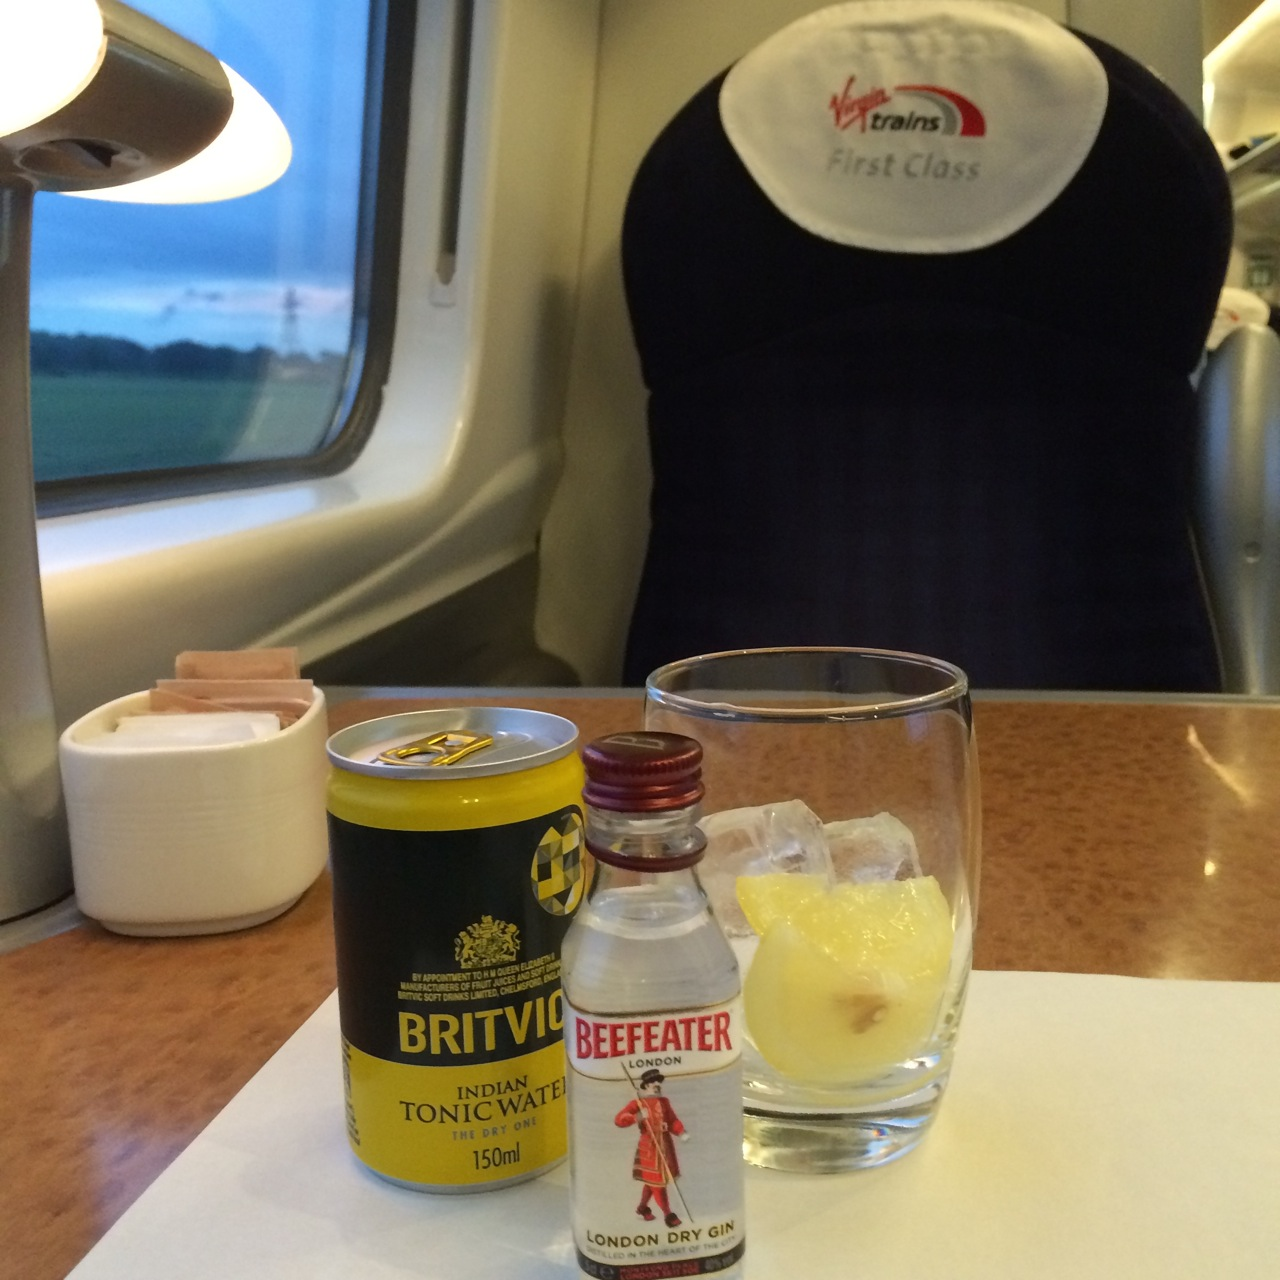 A ticket mixup meant I waspleasantly surprised to be in First Class on the train journey home. Might as well enjoy it!